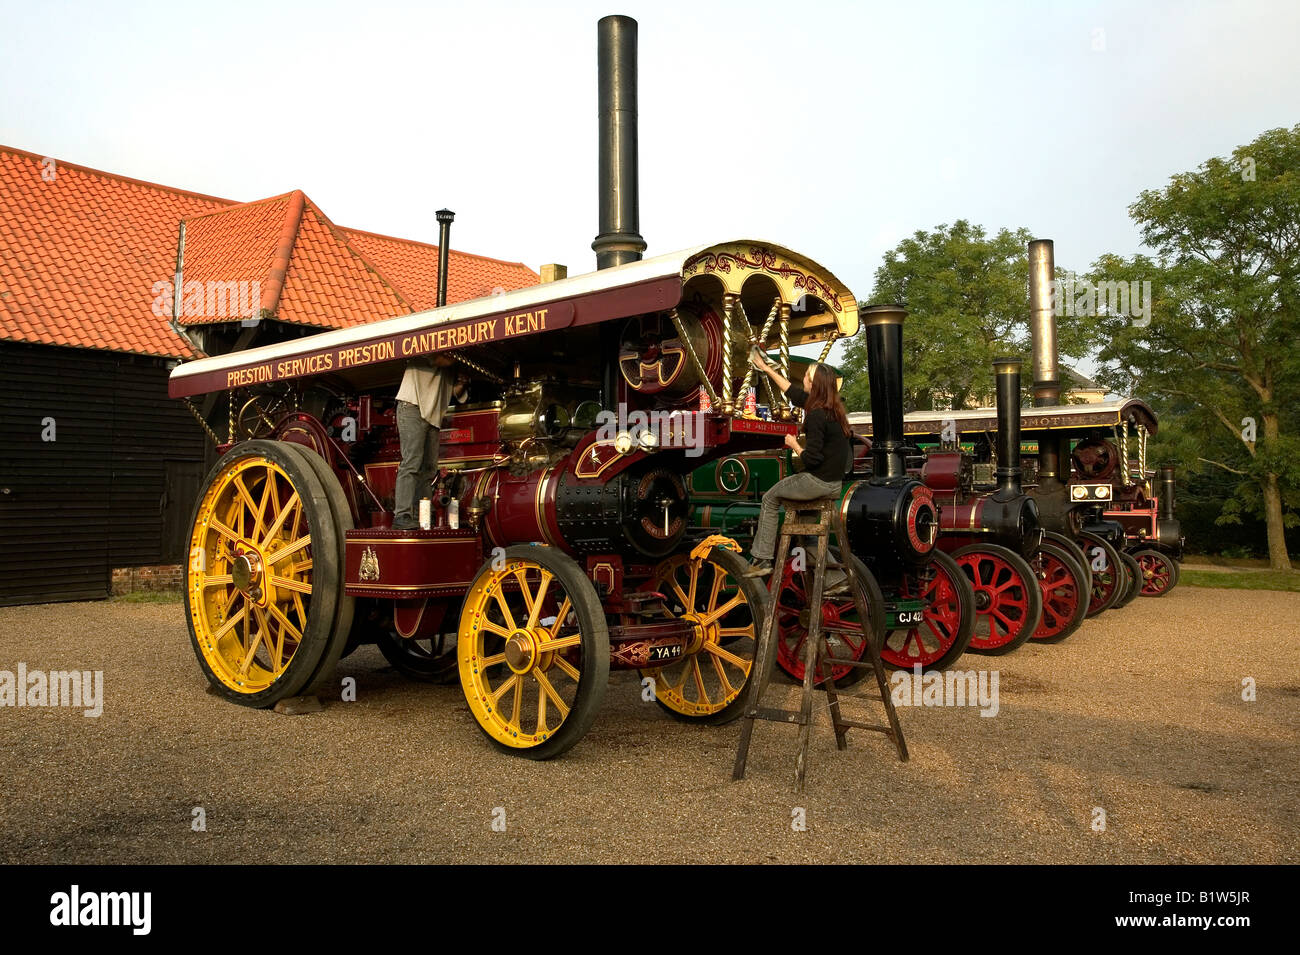 Rw of Traction Engines being cleaned and prepared for rally in Preston Kent UK - Stock Image